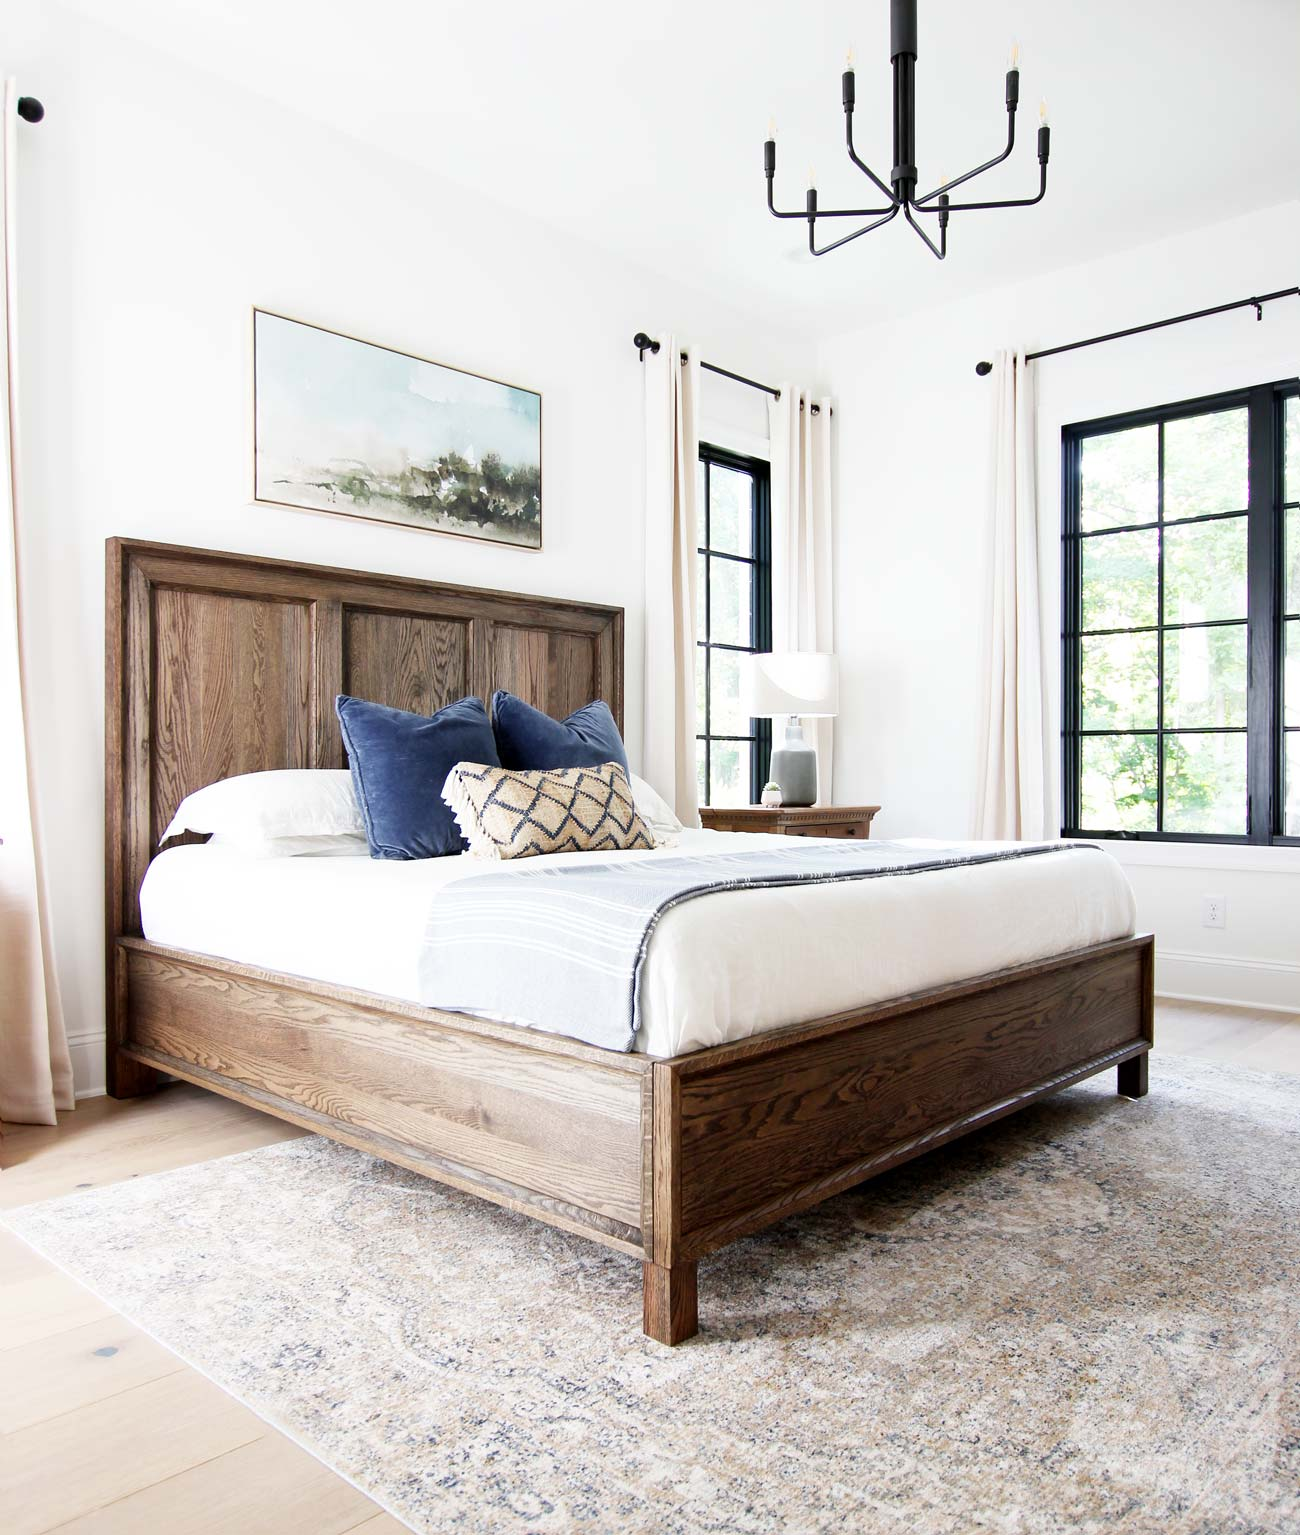 How To Build A Diy Bed Plank And Pillow